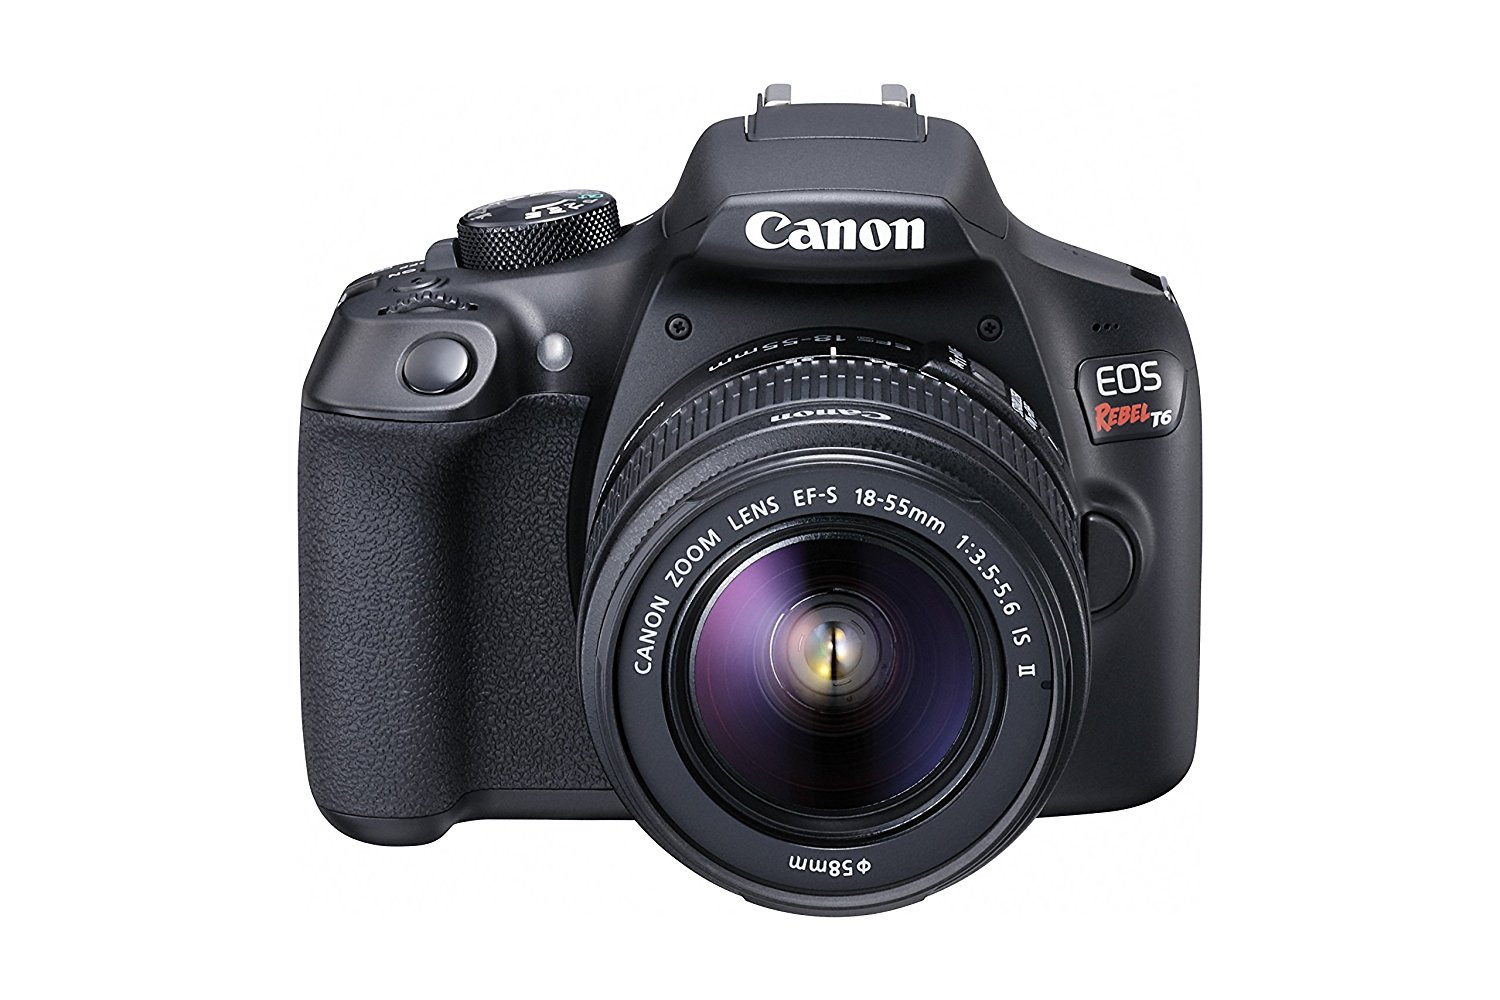 Camera Rocket Blower : Nerd tips for things you probably wont use: are dslr camera bundles